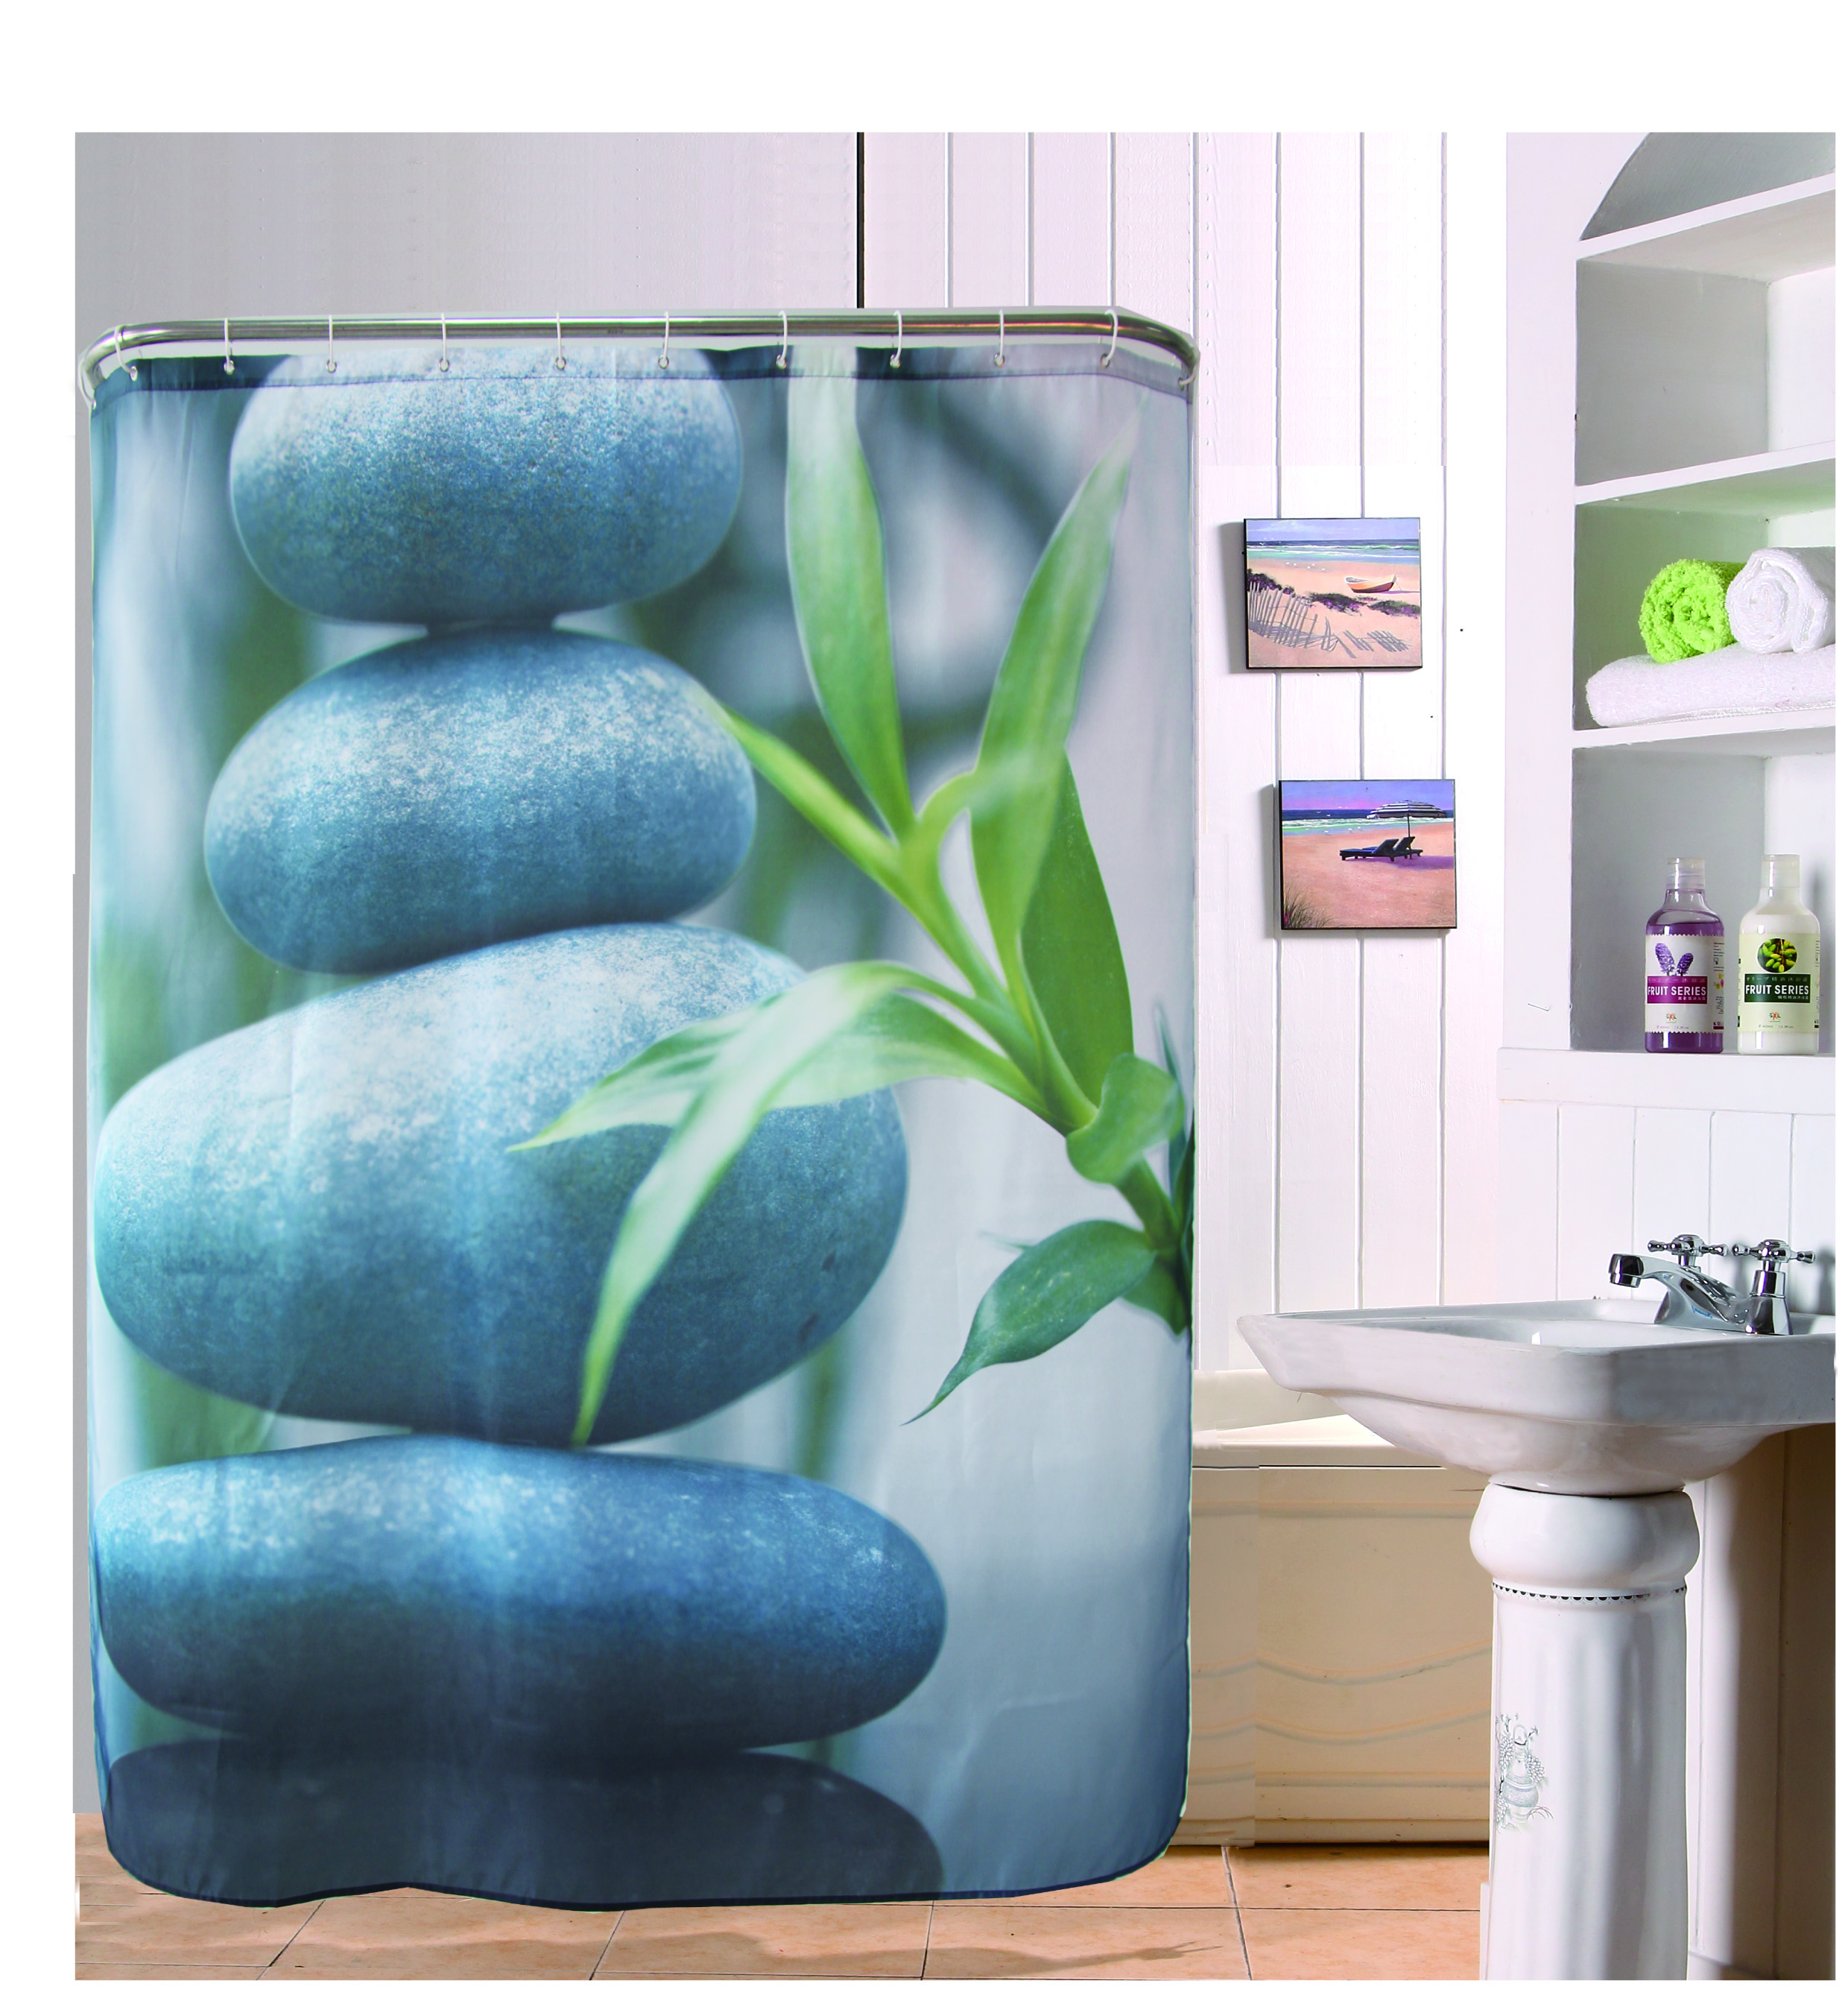 180cm 180cm Modern Shower kids Curtain Bamboo Leaf  amp amp  Stone Design Bathroom drapes Waterproof. Online Get Cheap Bathroom Drapes  Aliexpress com   Alibaba Group